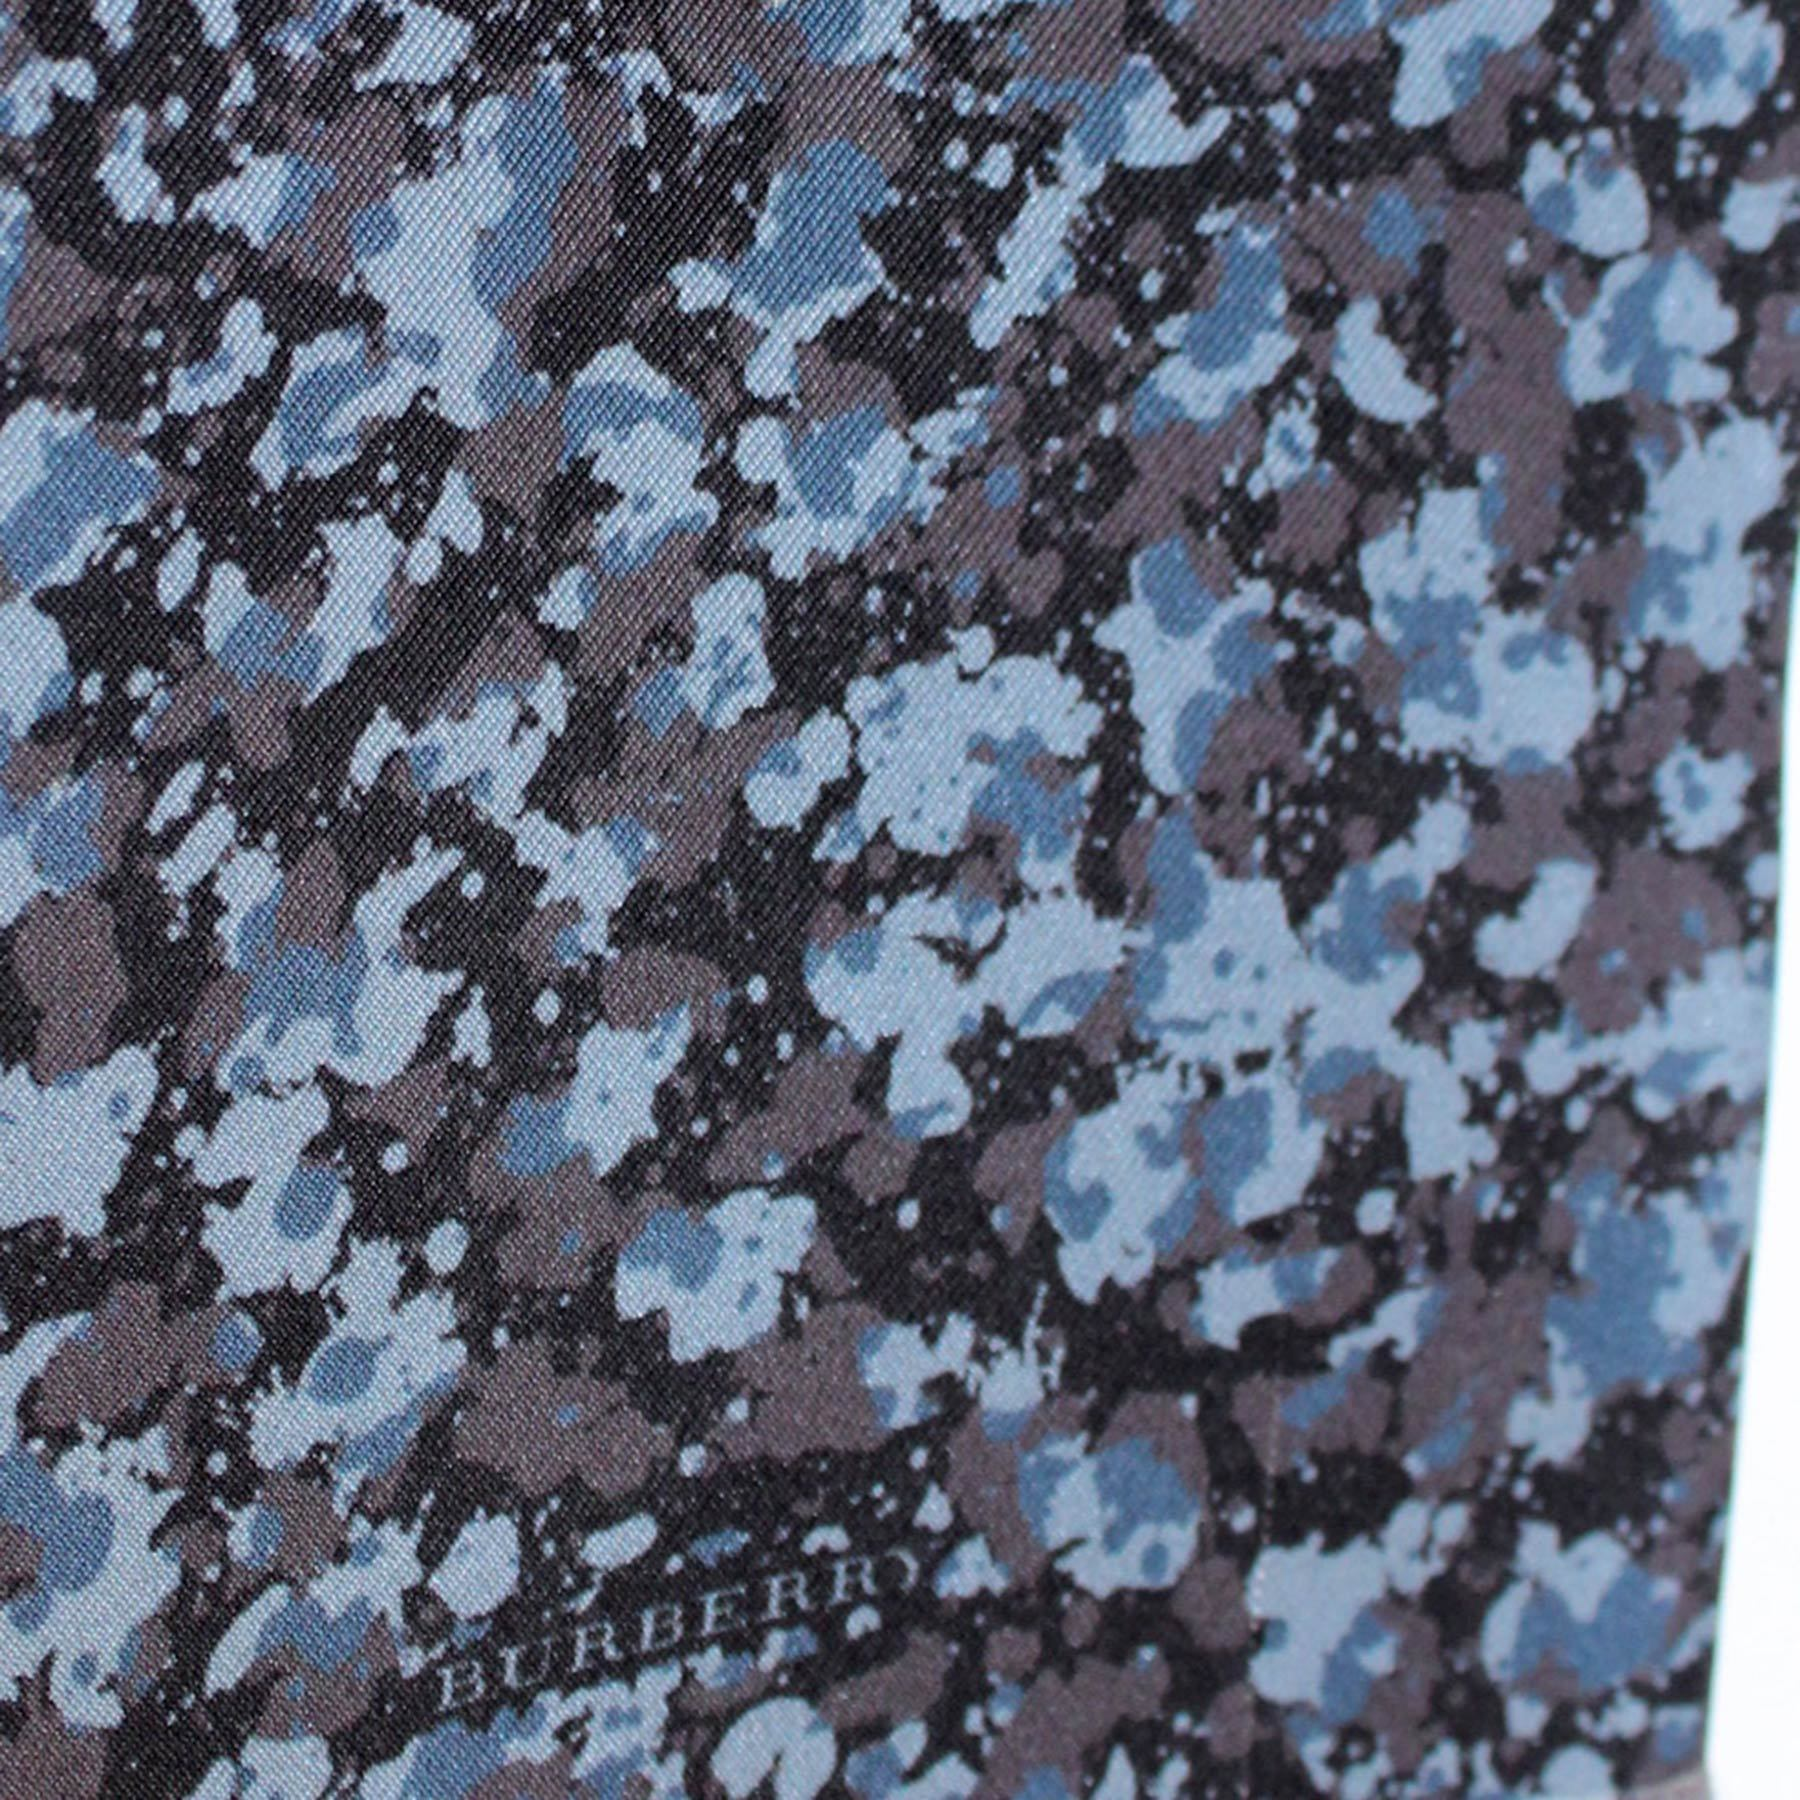 Burberry Scarf Dark Blue Gray Black Floral - Silk Shawl